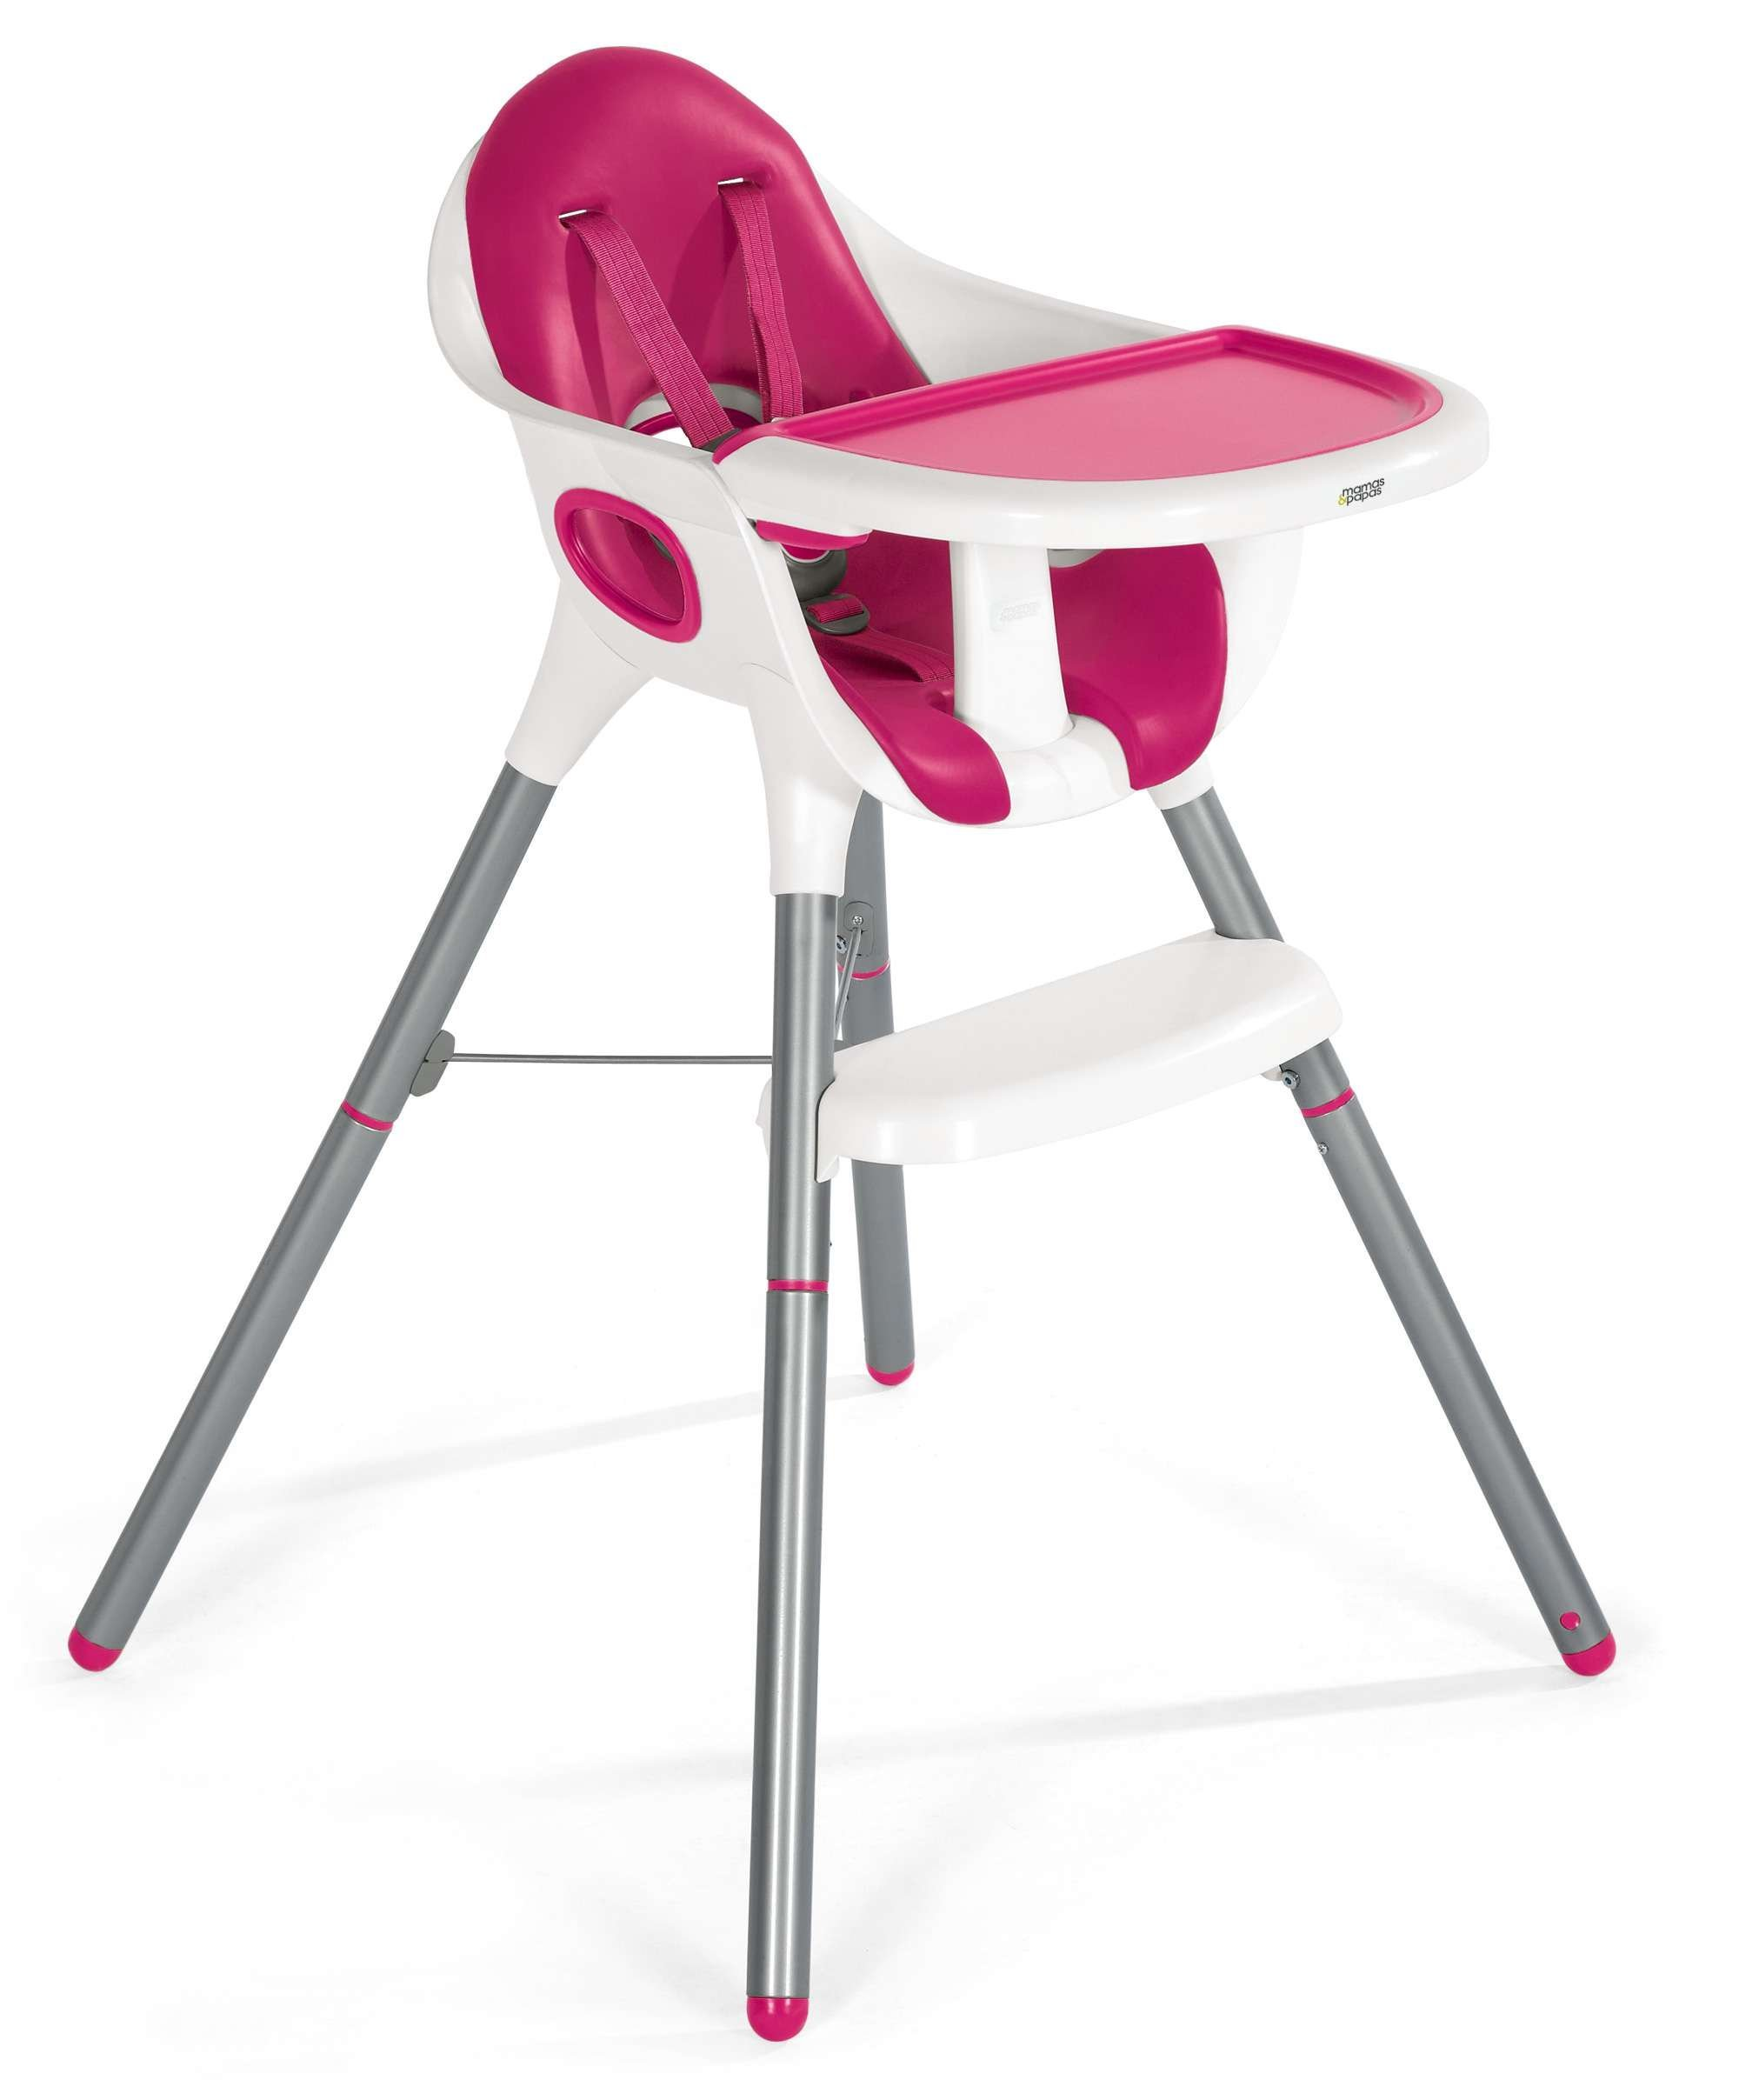 Mamas & Papas Juice High Chair, Pink